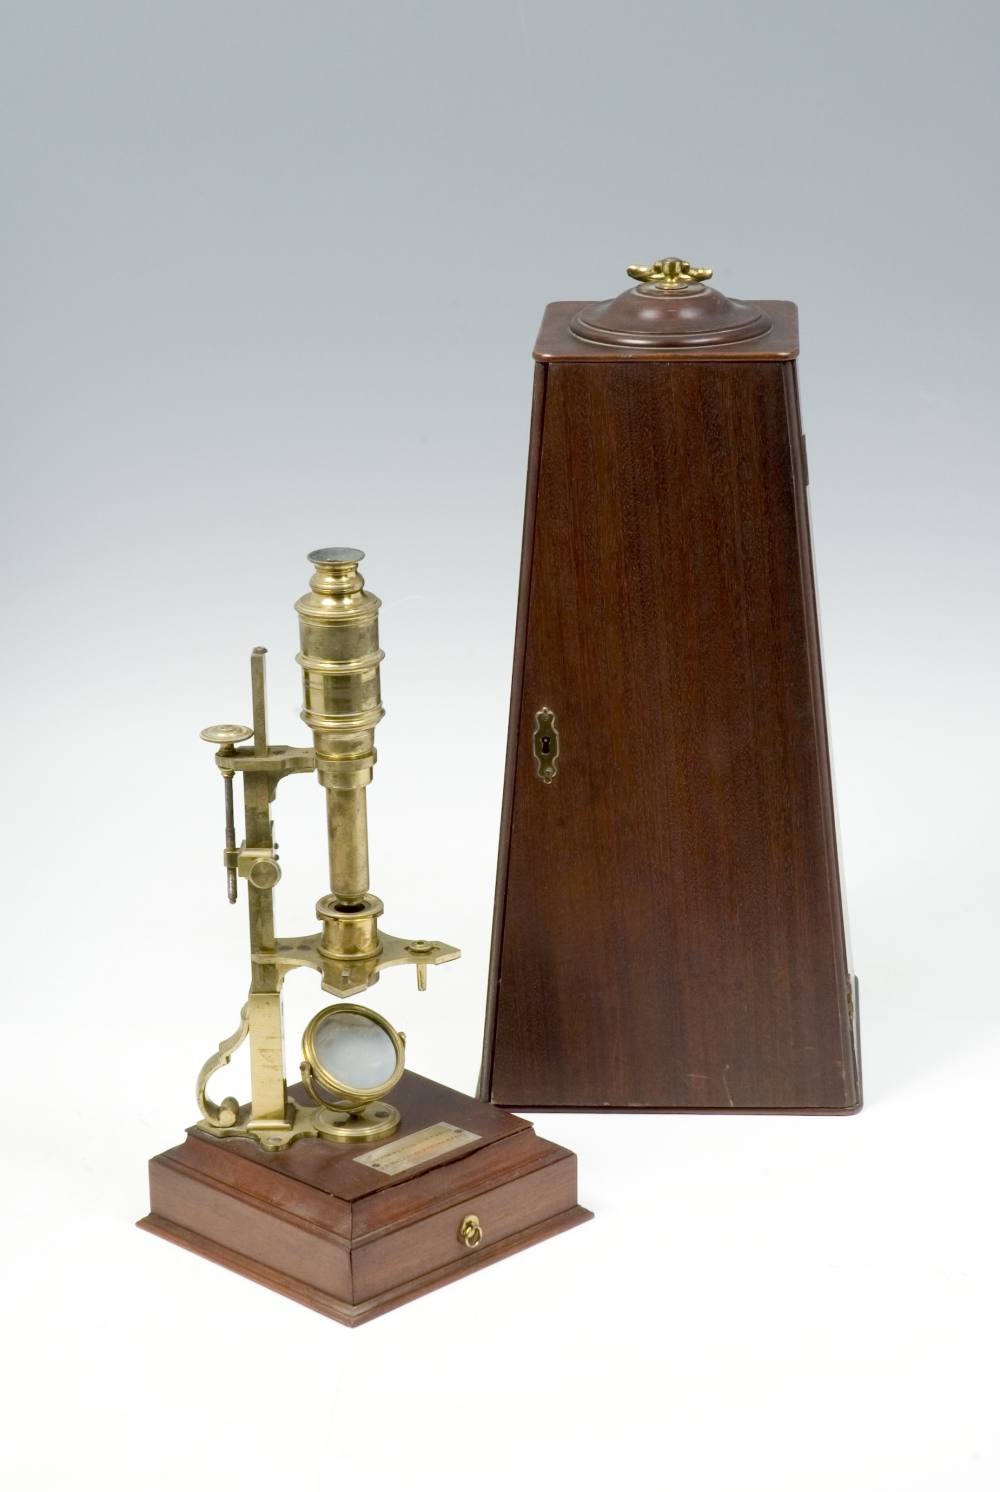 preview image for Cuff-Type Microscope with Screw-Barrel Microscope and Accessories, by George Adams, London, Mid 18th Century